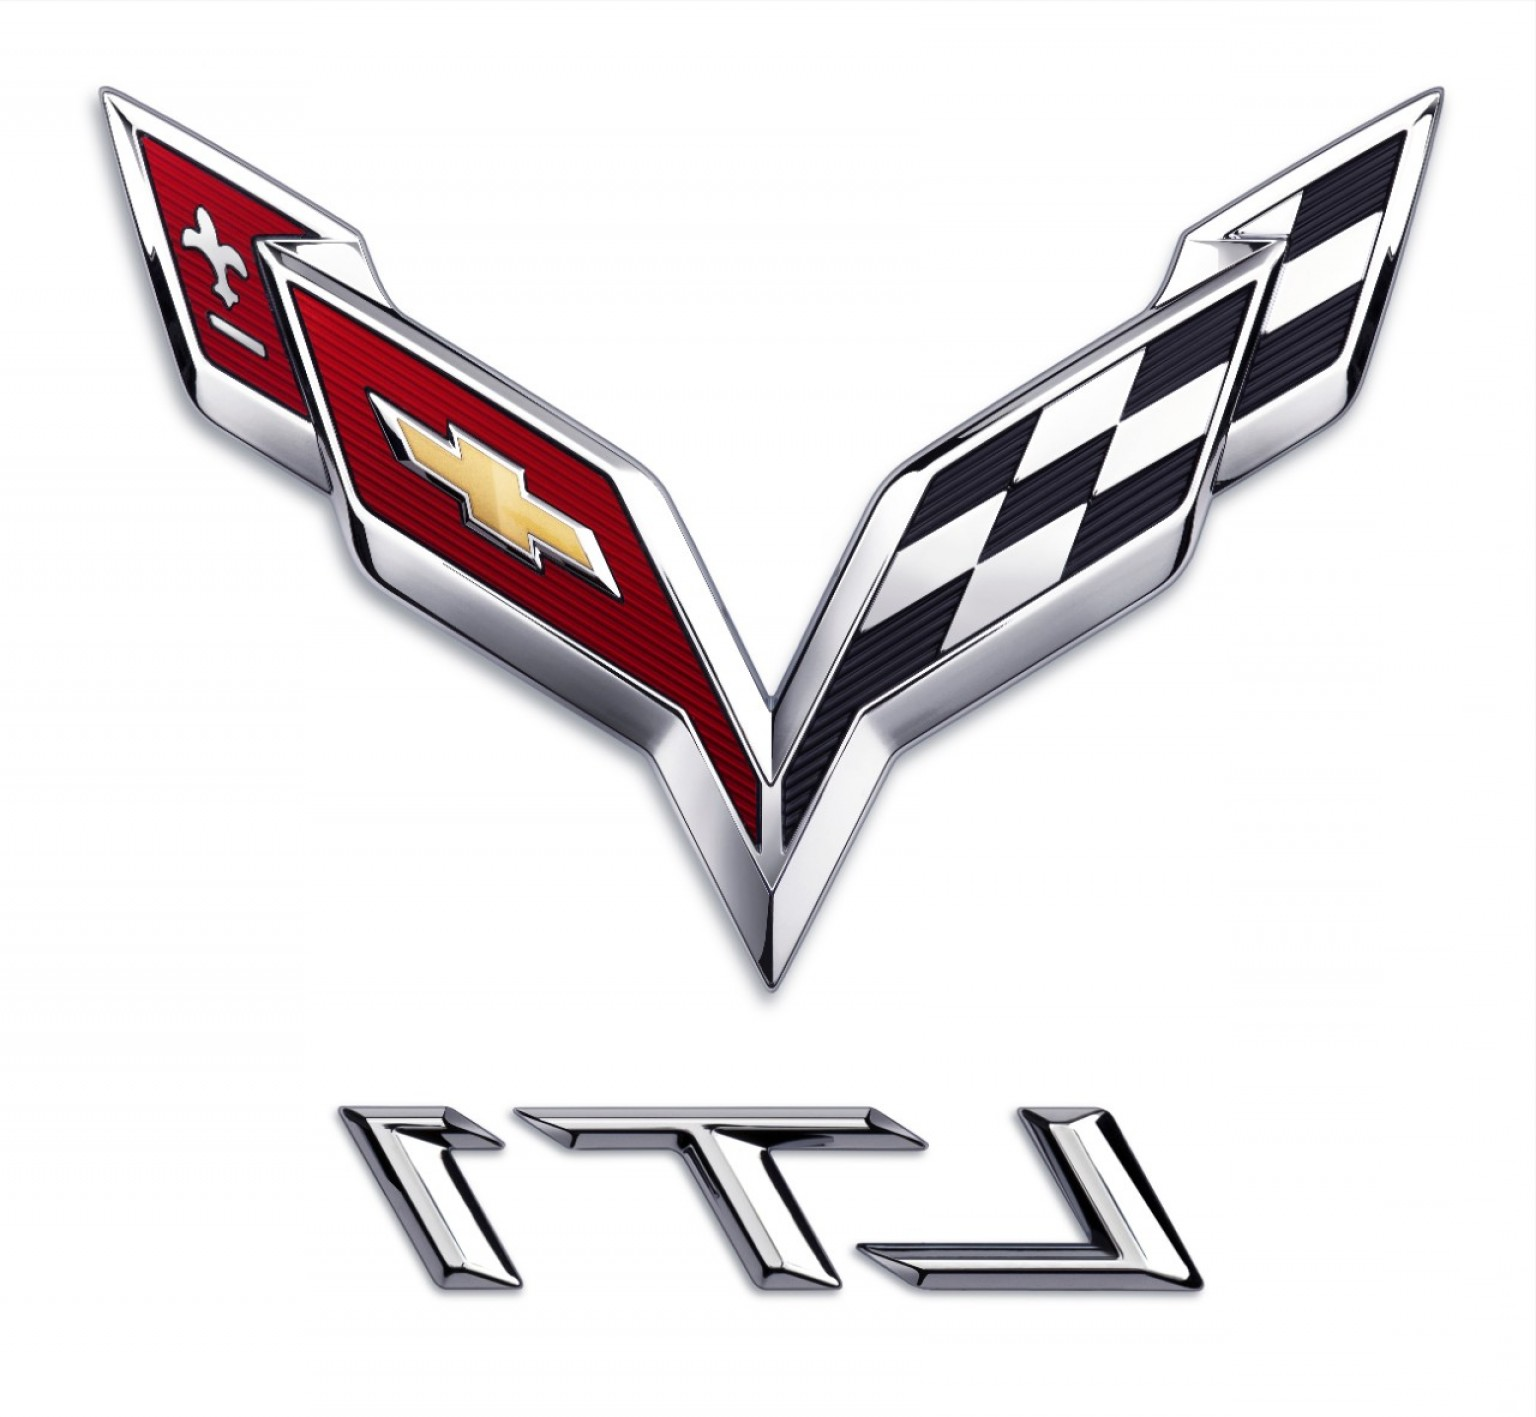 Corvette Stingray Logo Vector: All New Lt Chevy Small Block Will Debut In Corvette